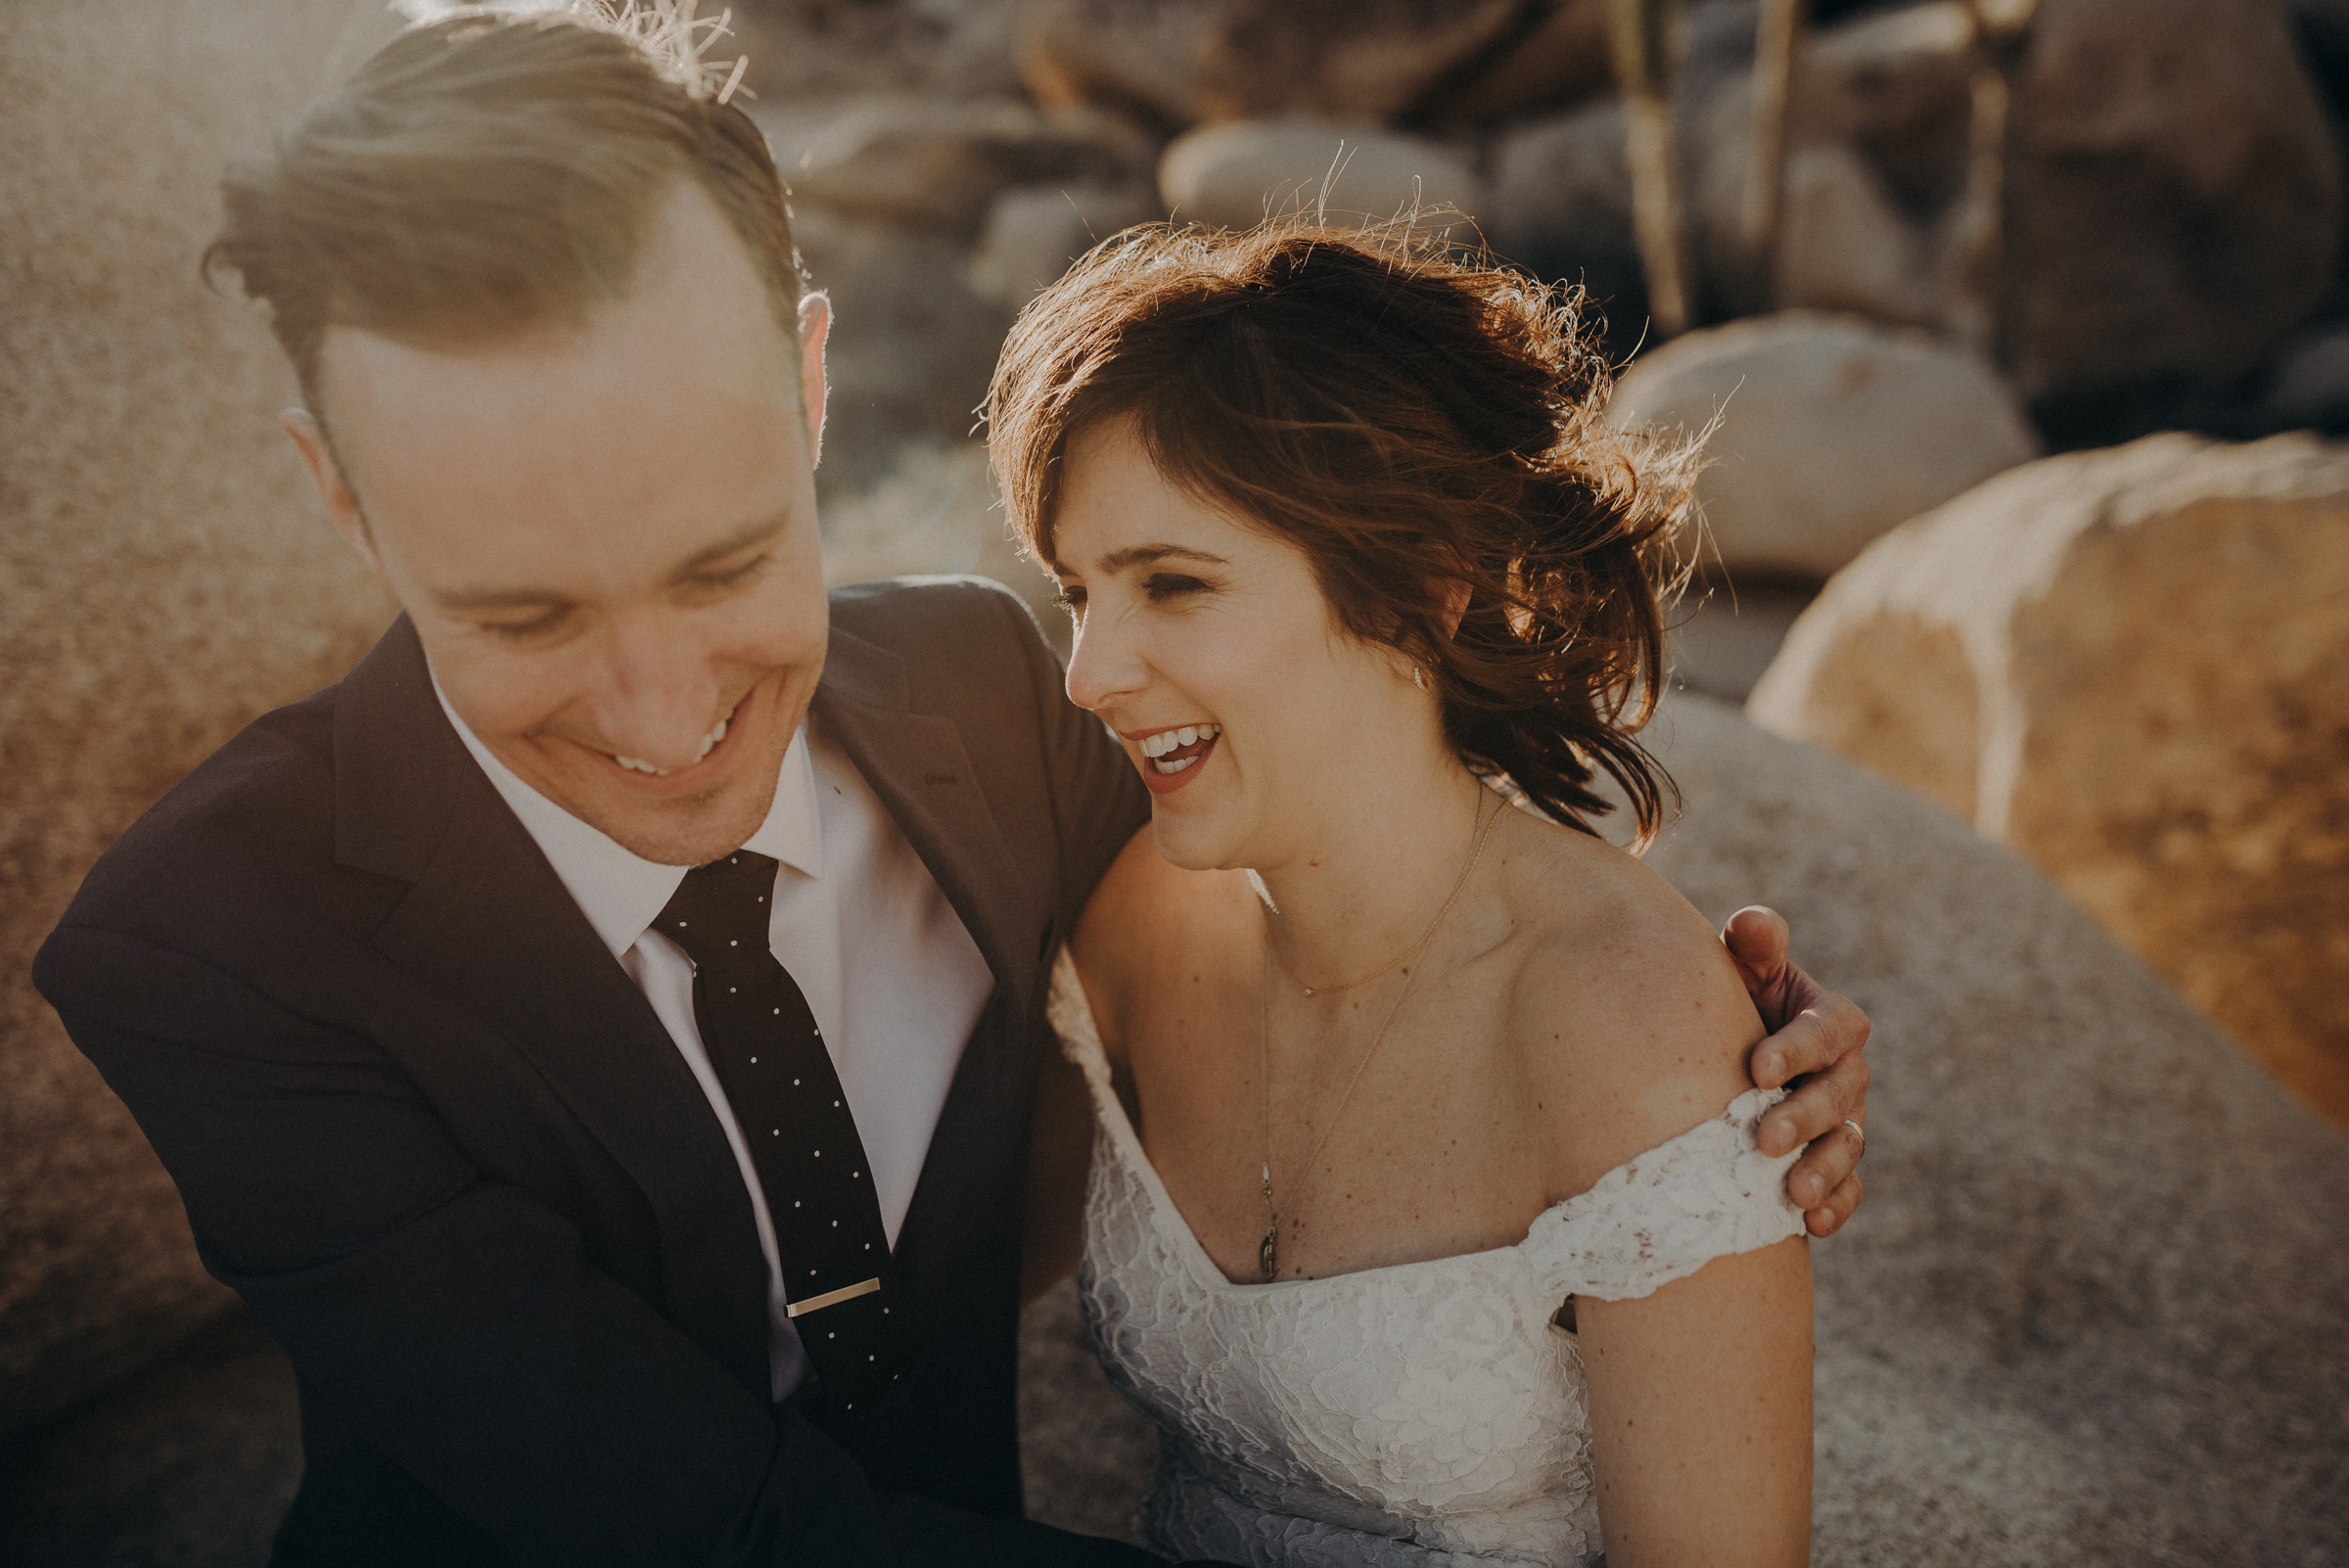 Joshua Tree Elopement - Los Angeles Wedding Photographers - IsaiahAndTaylor.com-076.jpg